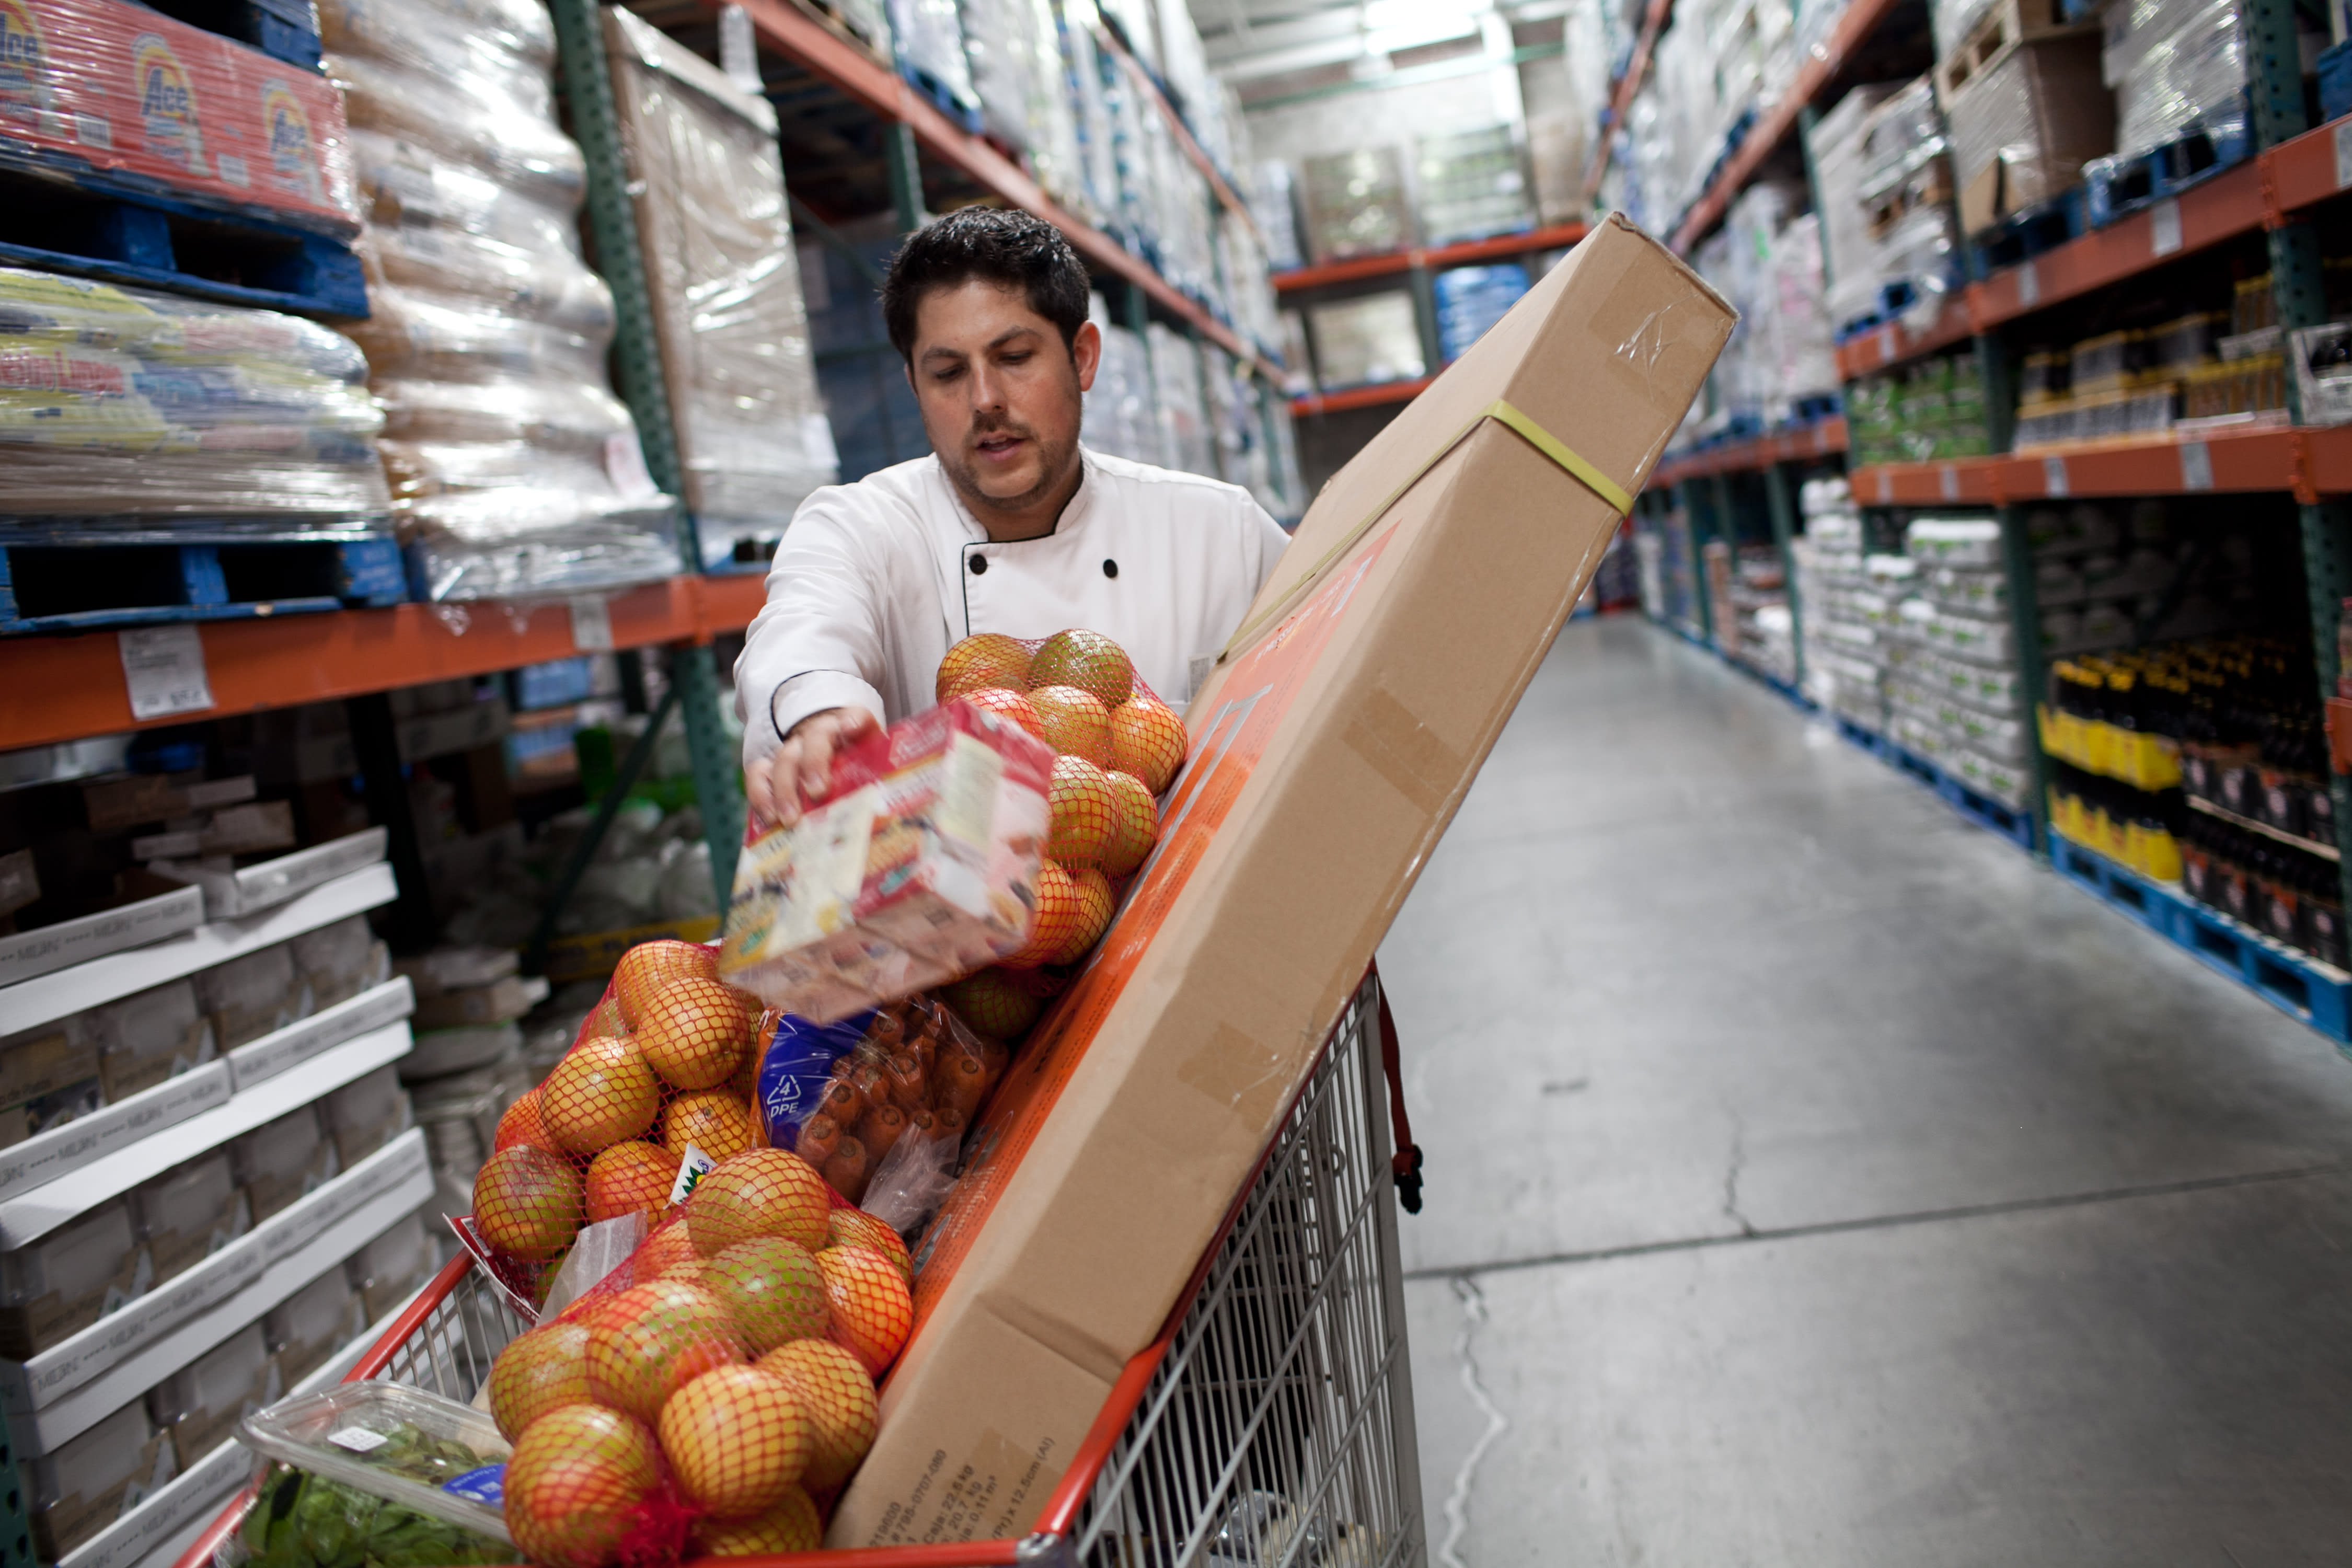 Bernstein downgrades Costco, says memberships will be the first to go in an economic downturn